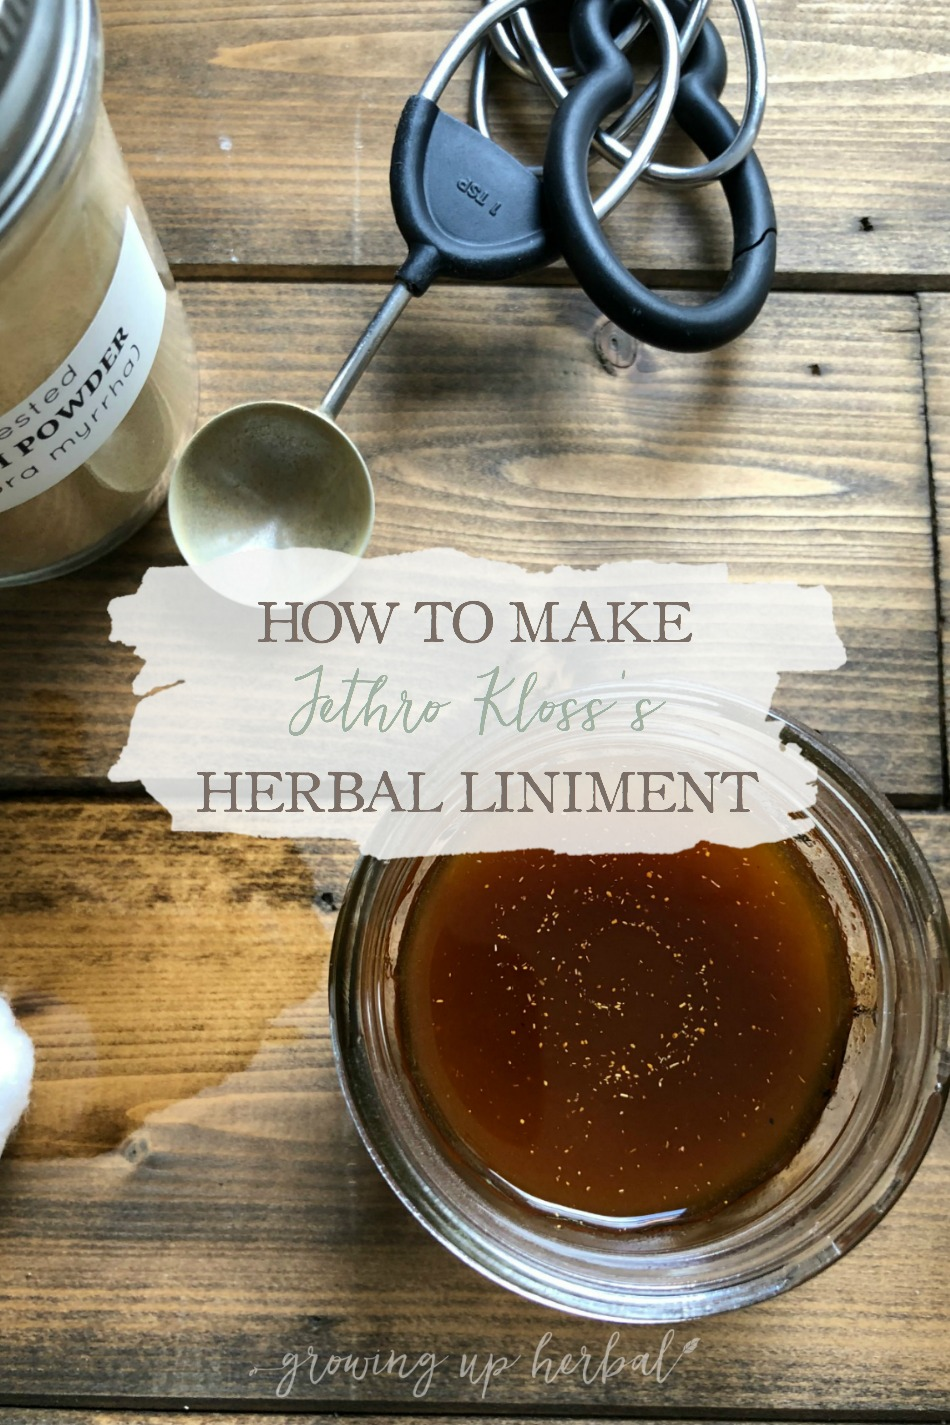 How To Make Jethro Kloss's Herbal Liniment | Growing Up Herbal | Here's a recipe for an external herbal disinfecting solution to include in your natural medicine cabinet!